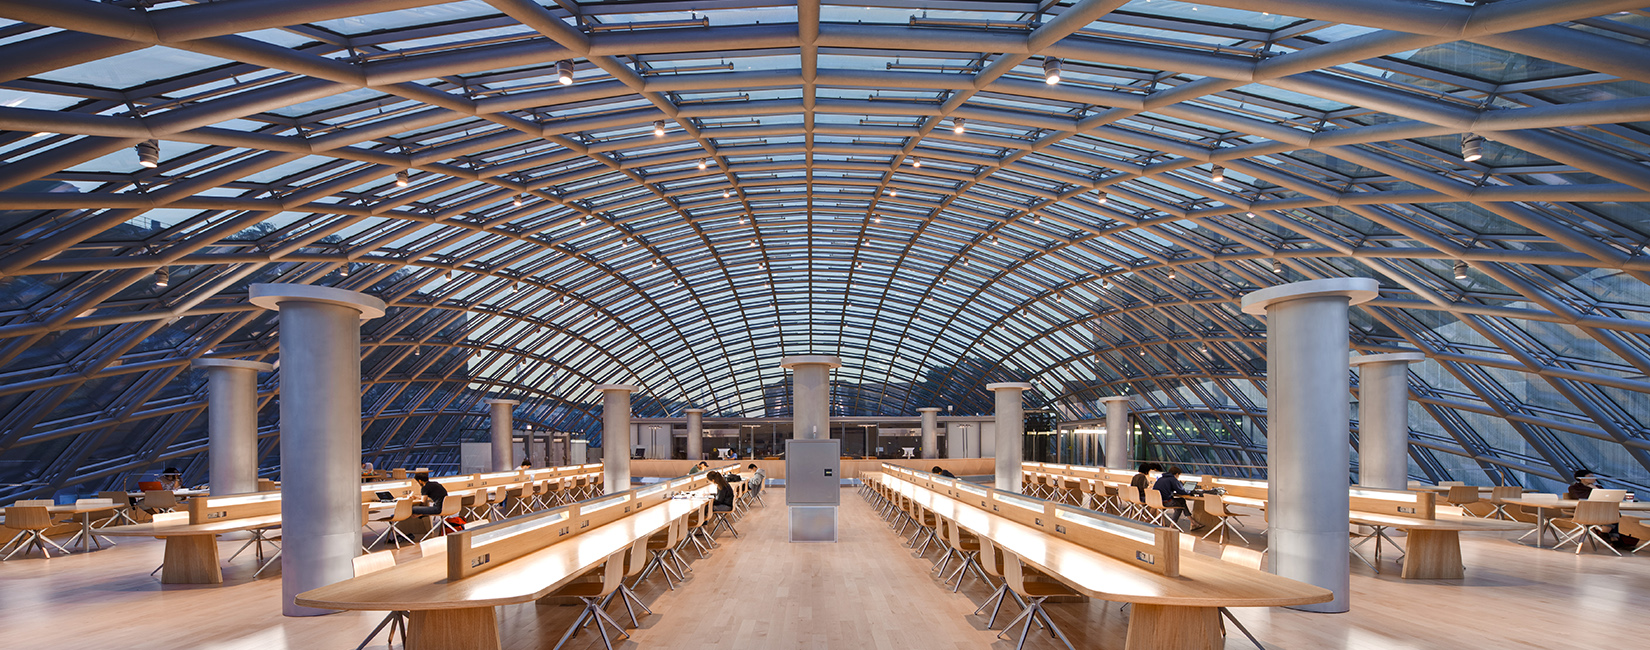 The University of Chicago Mansueto Library